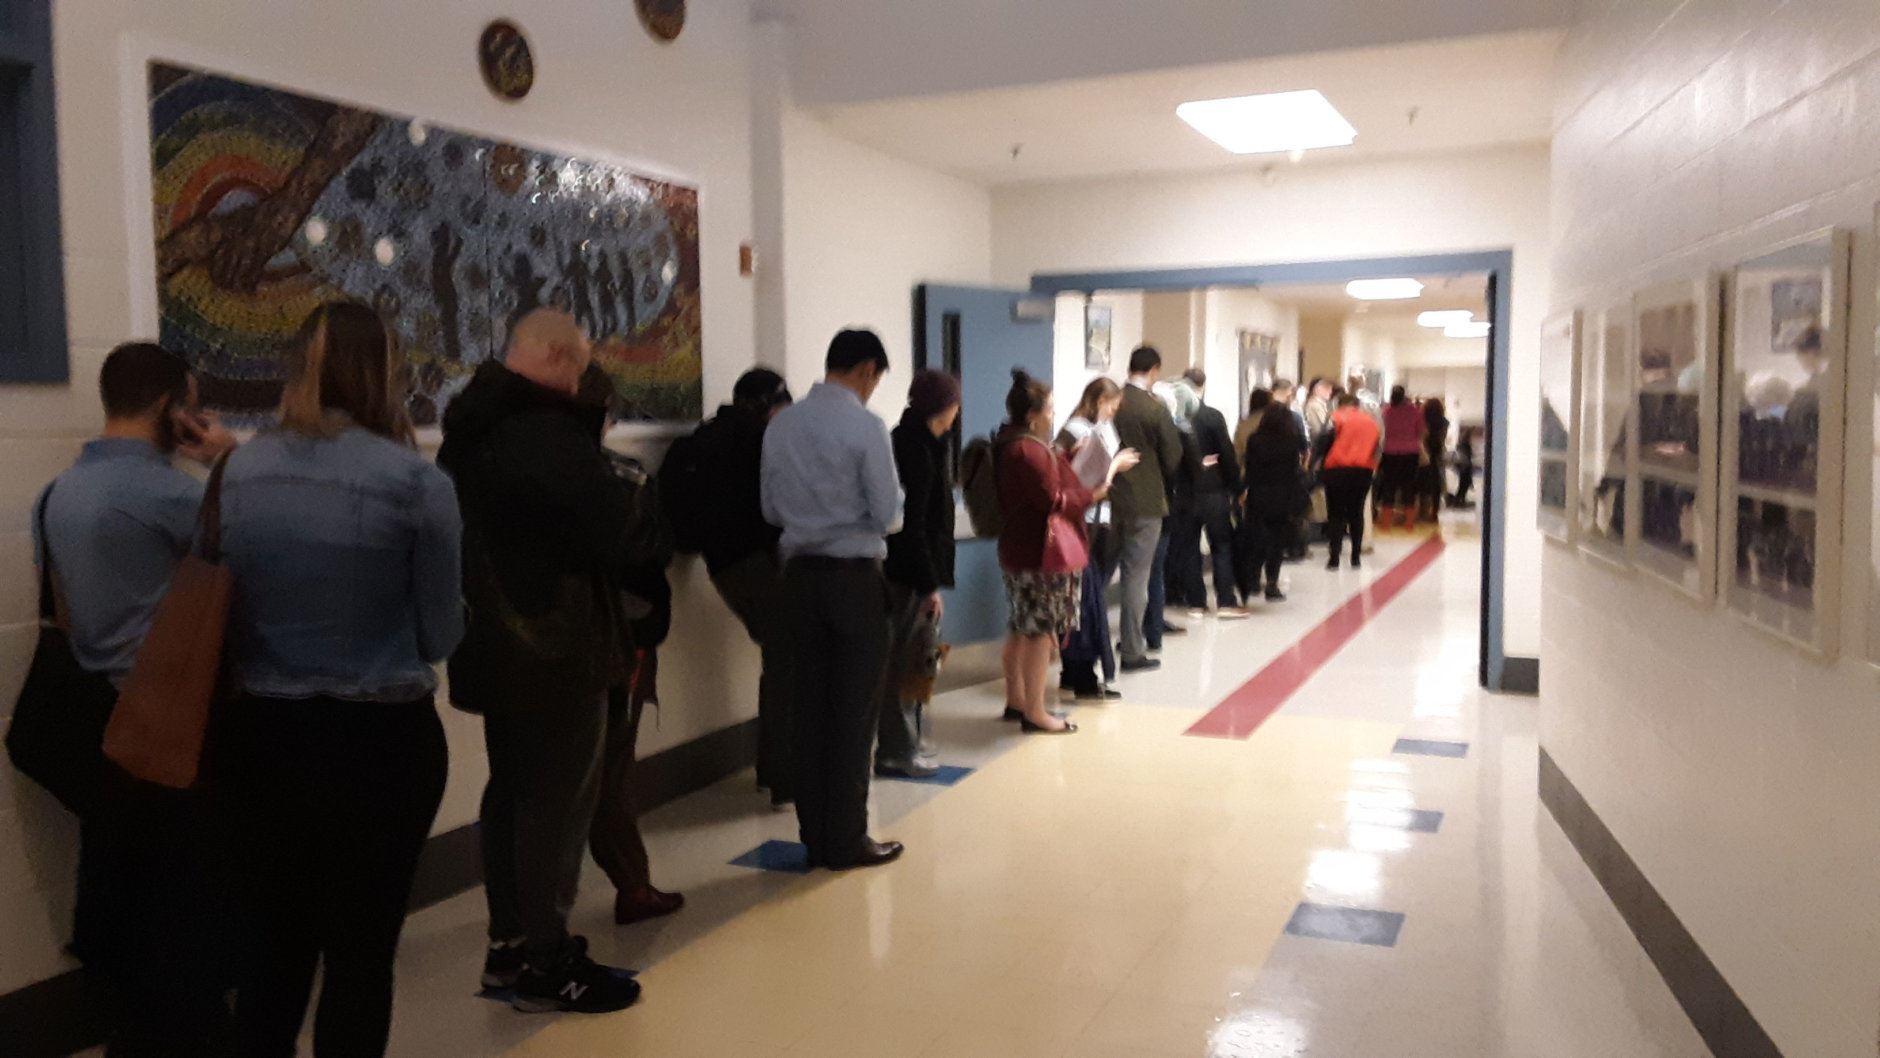 A line of voters wait in line at the poll at Bethesda Elementary in Montgomery County, Maryland. (WTOP/Lisa Weiner)